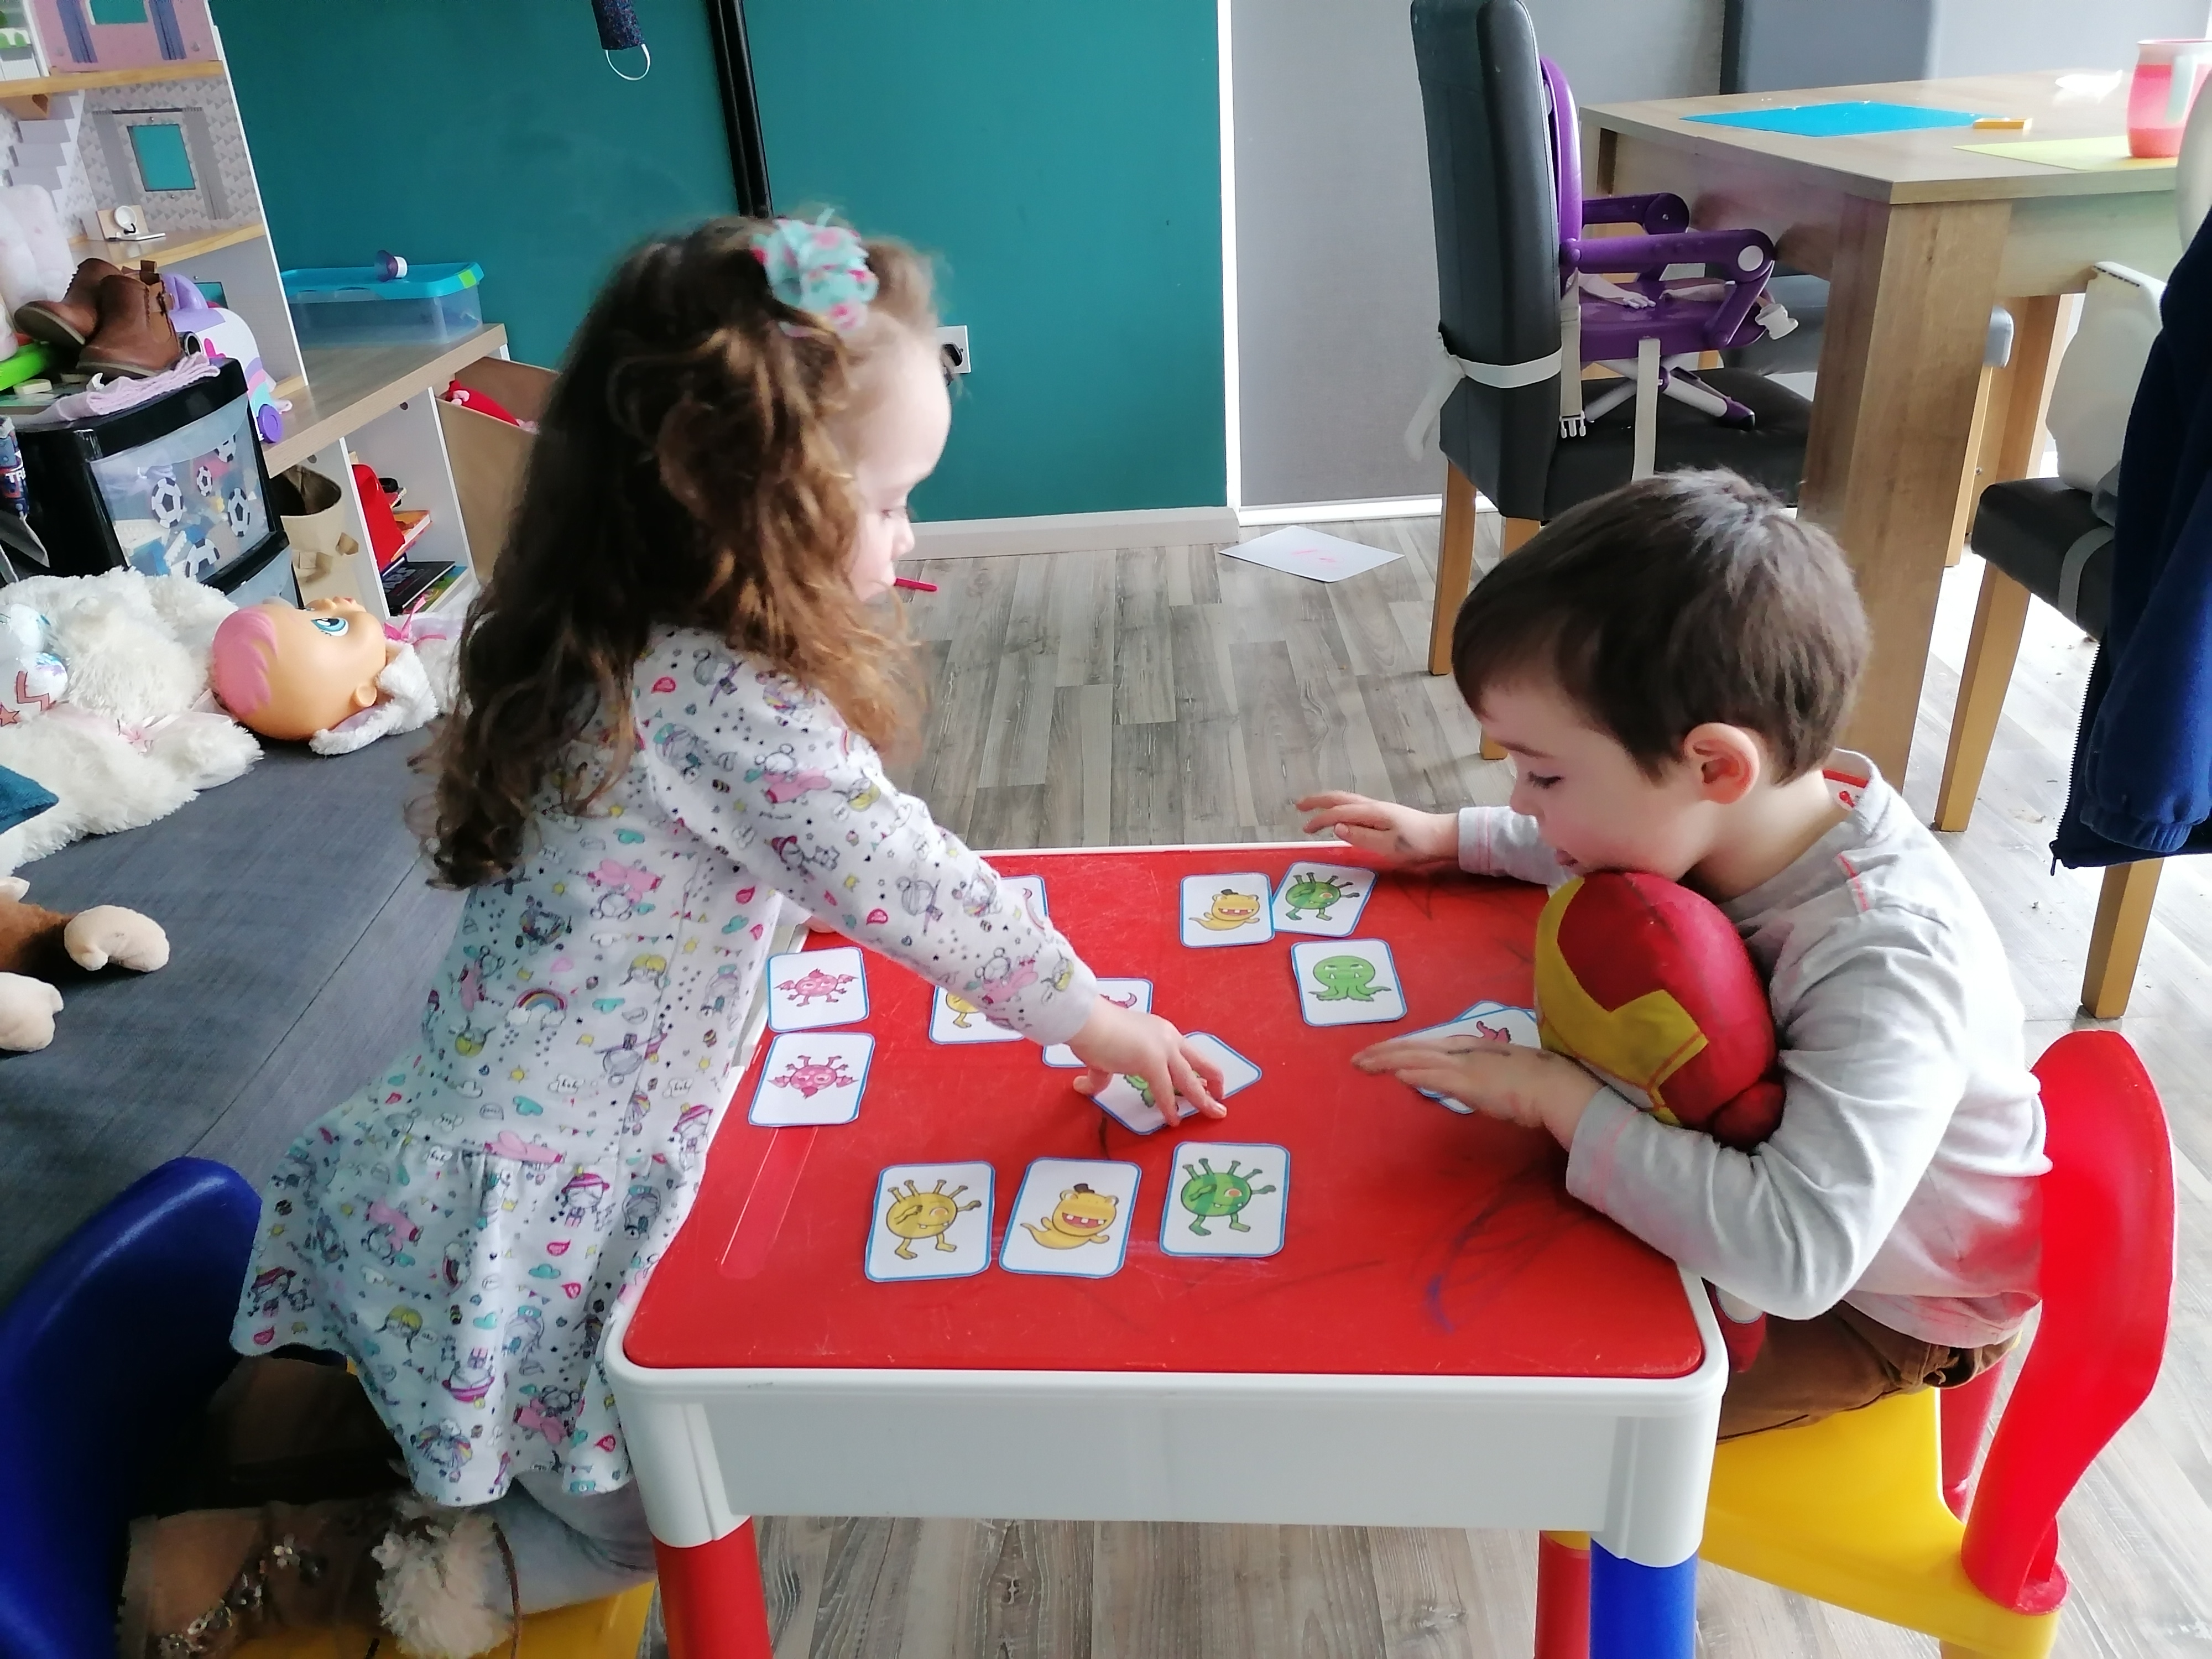 Zack and Layla play snap!